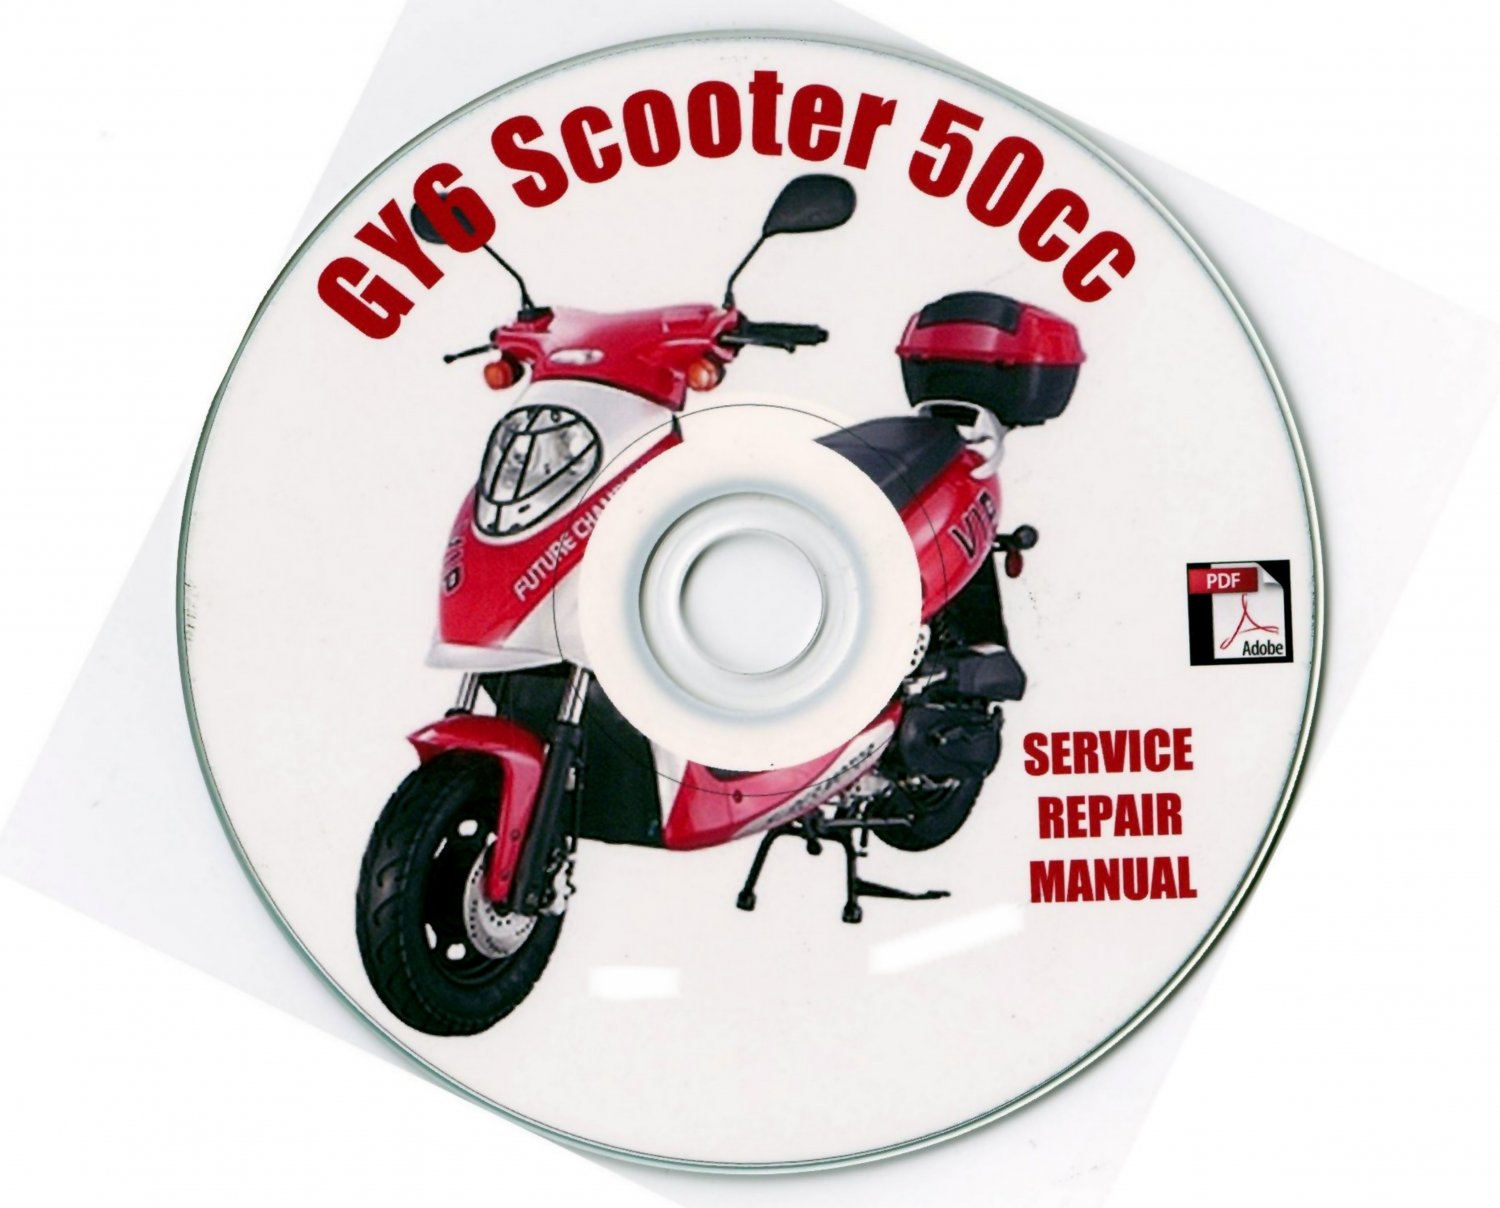 gy6 50cc scooter service repair manual rebuild fix chinese. Black Bedroom Furniture Sets. Home Design Ideas